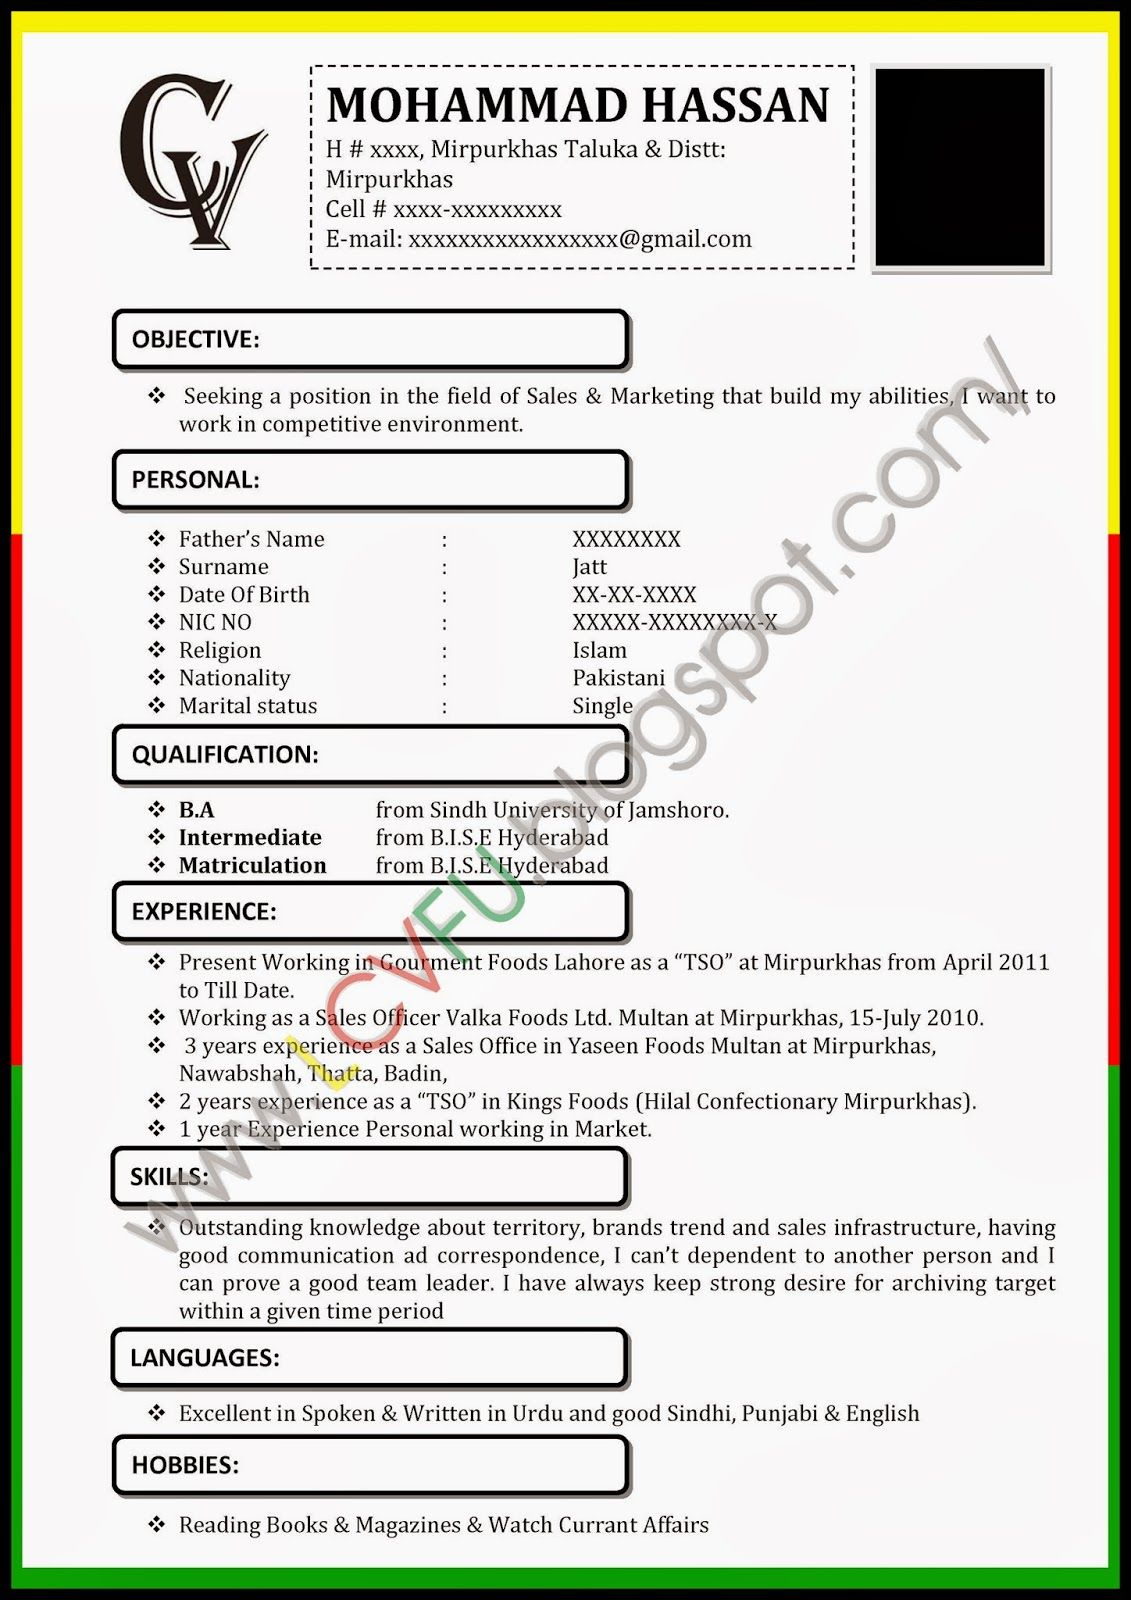 Curriculum Vitae New Zealand Format | resume examples | Pinterest